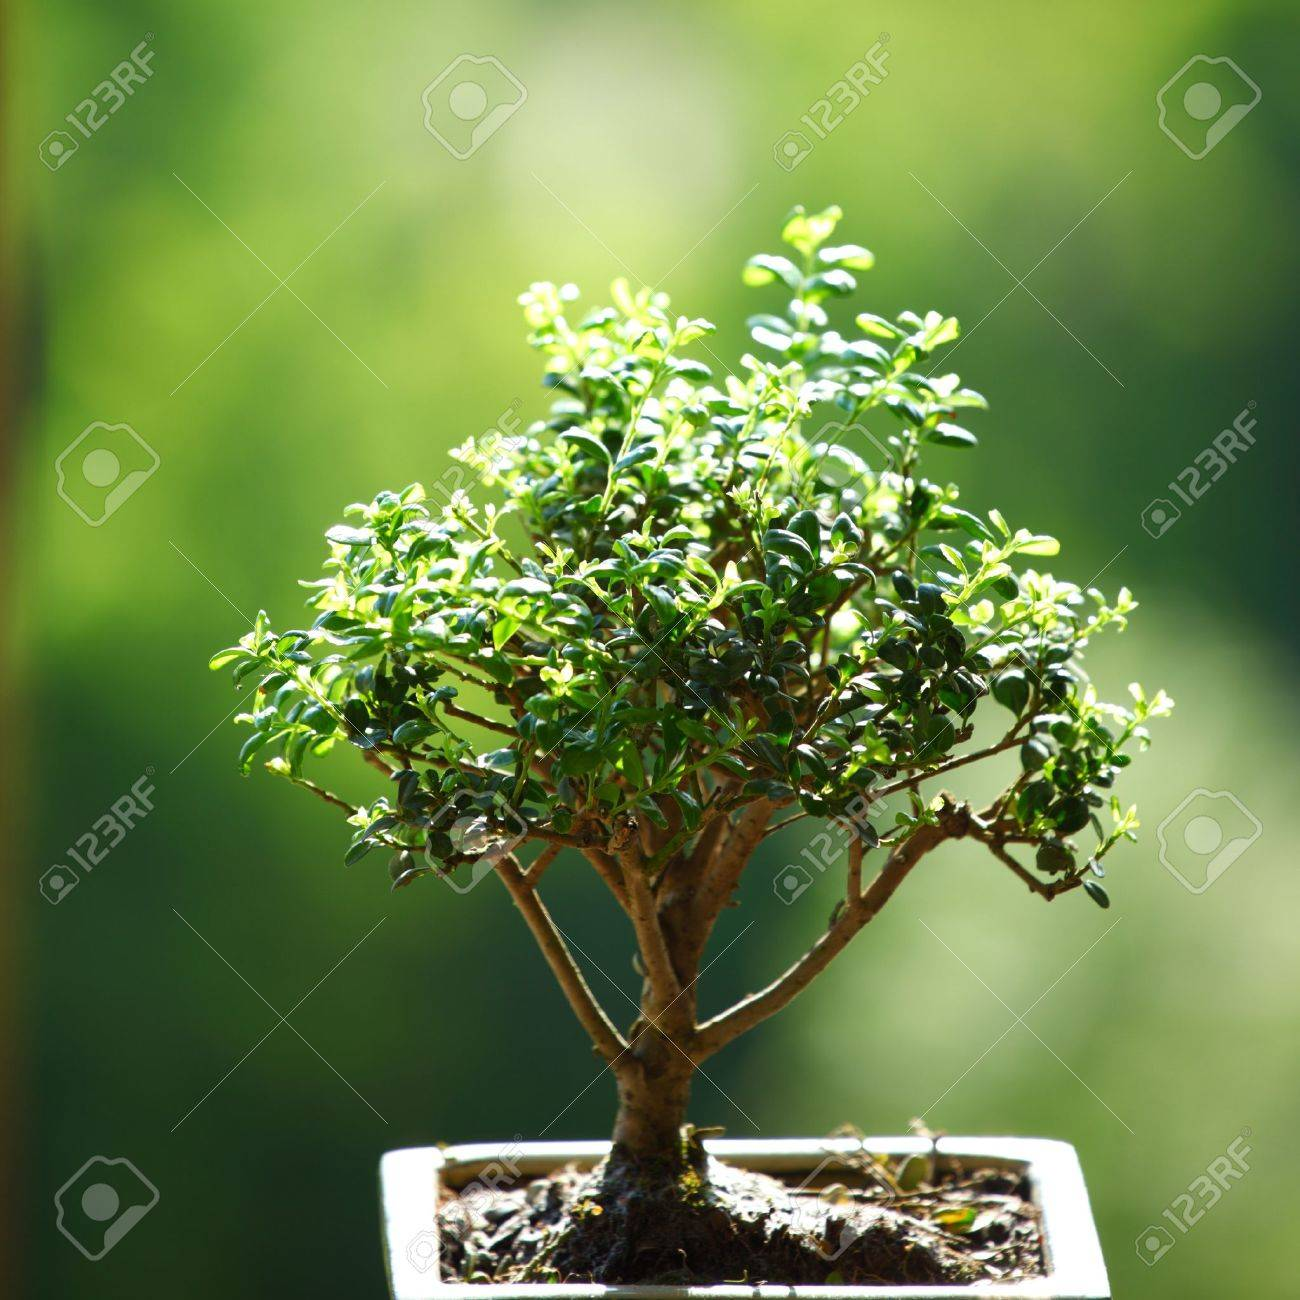 Bonsai On Green Grass Background Stock Photo Picture And Royalty Free Image Image 8744060